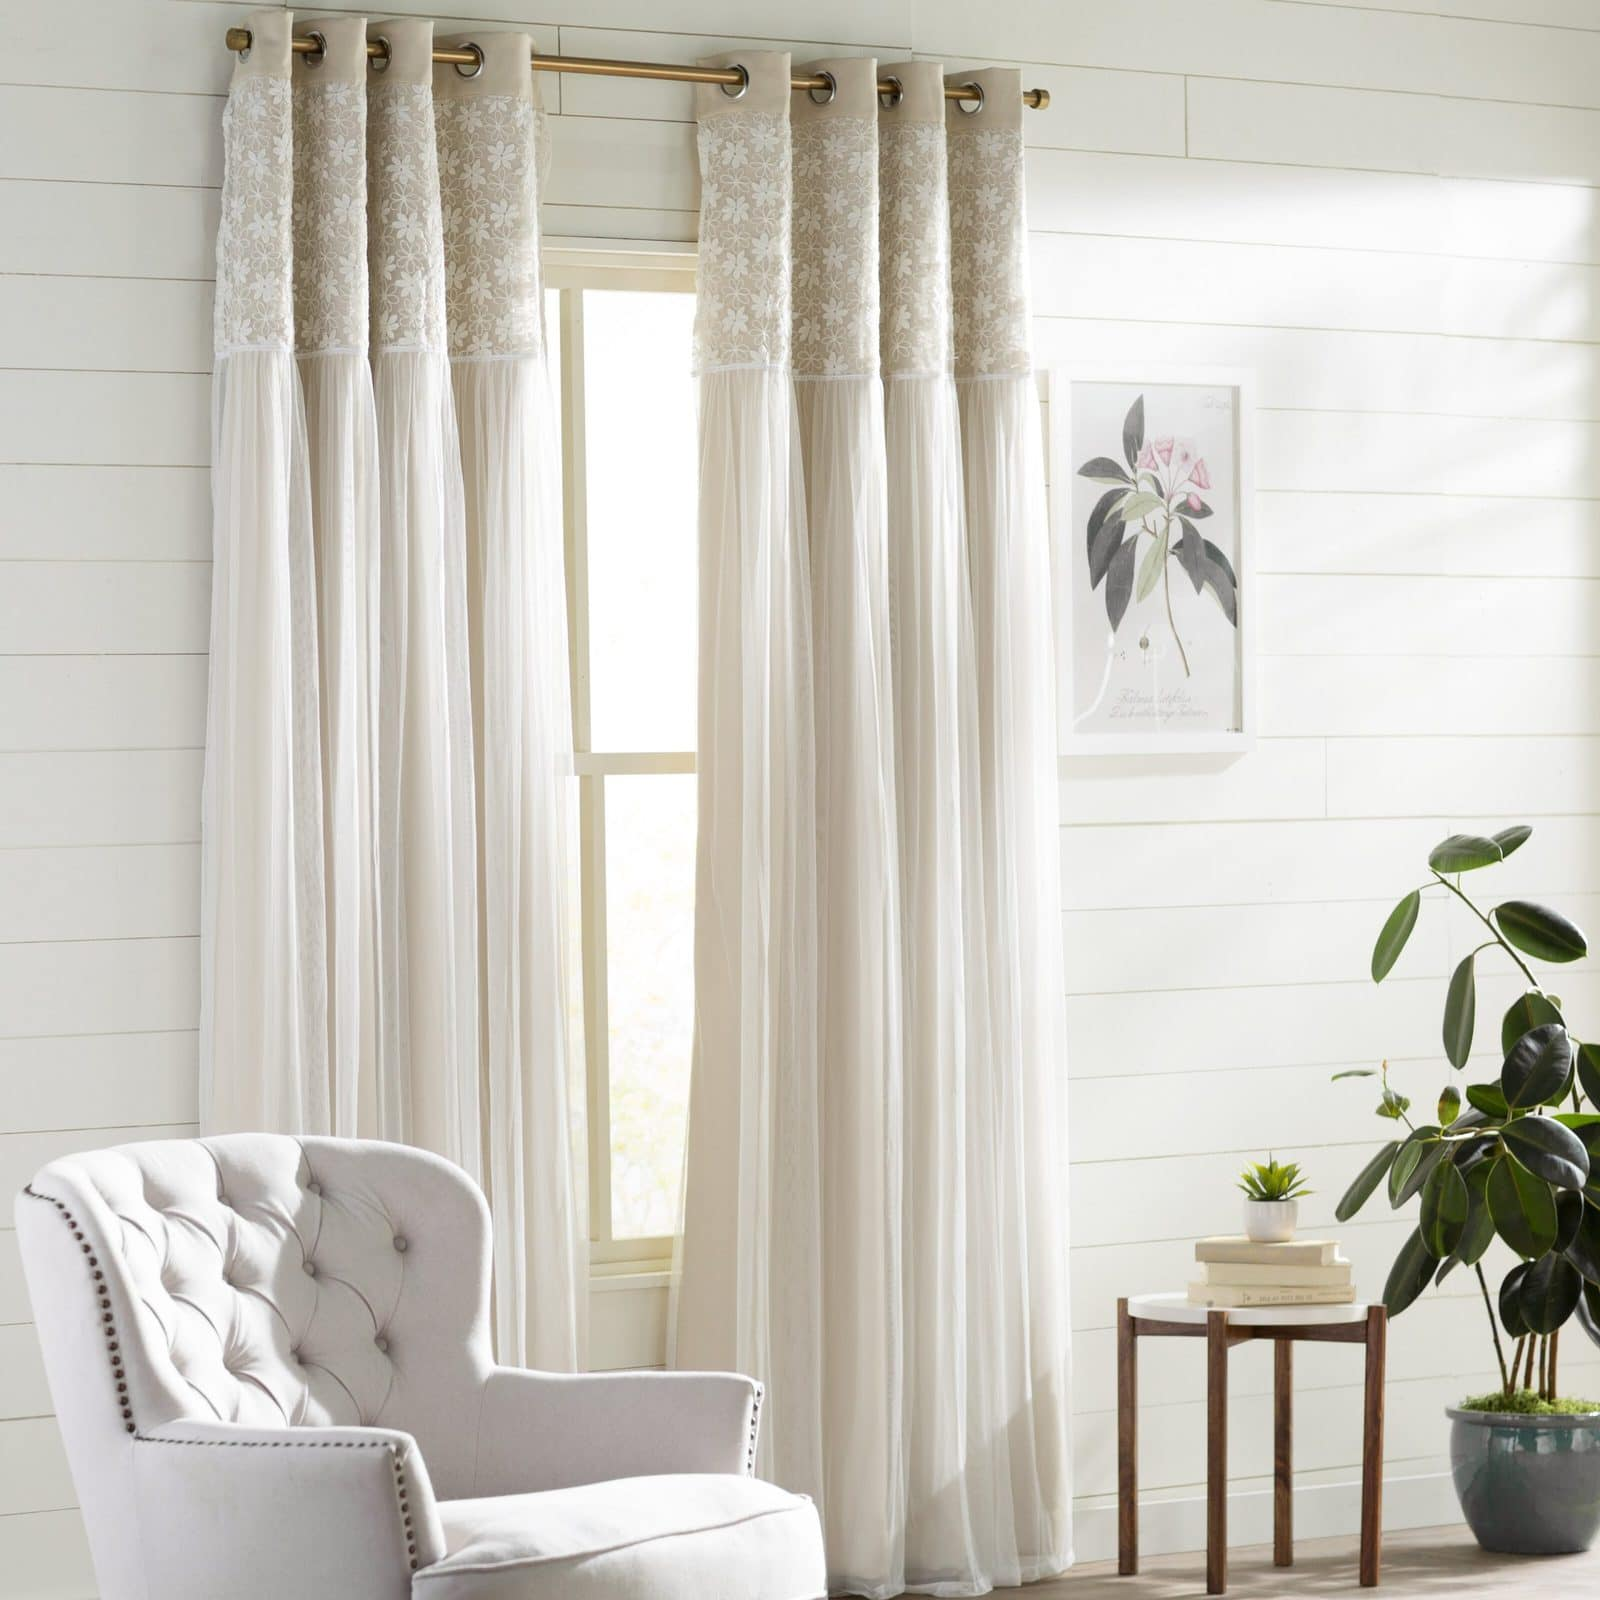 A Touch of Whimsy With White Lace Overlay Curtains